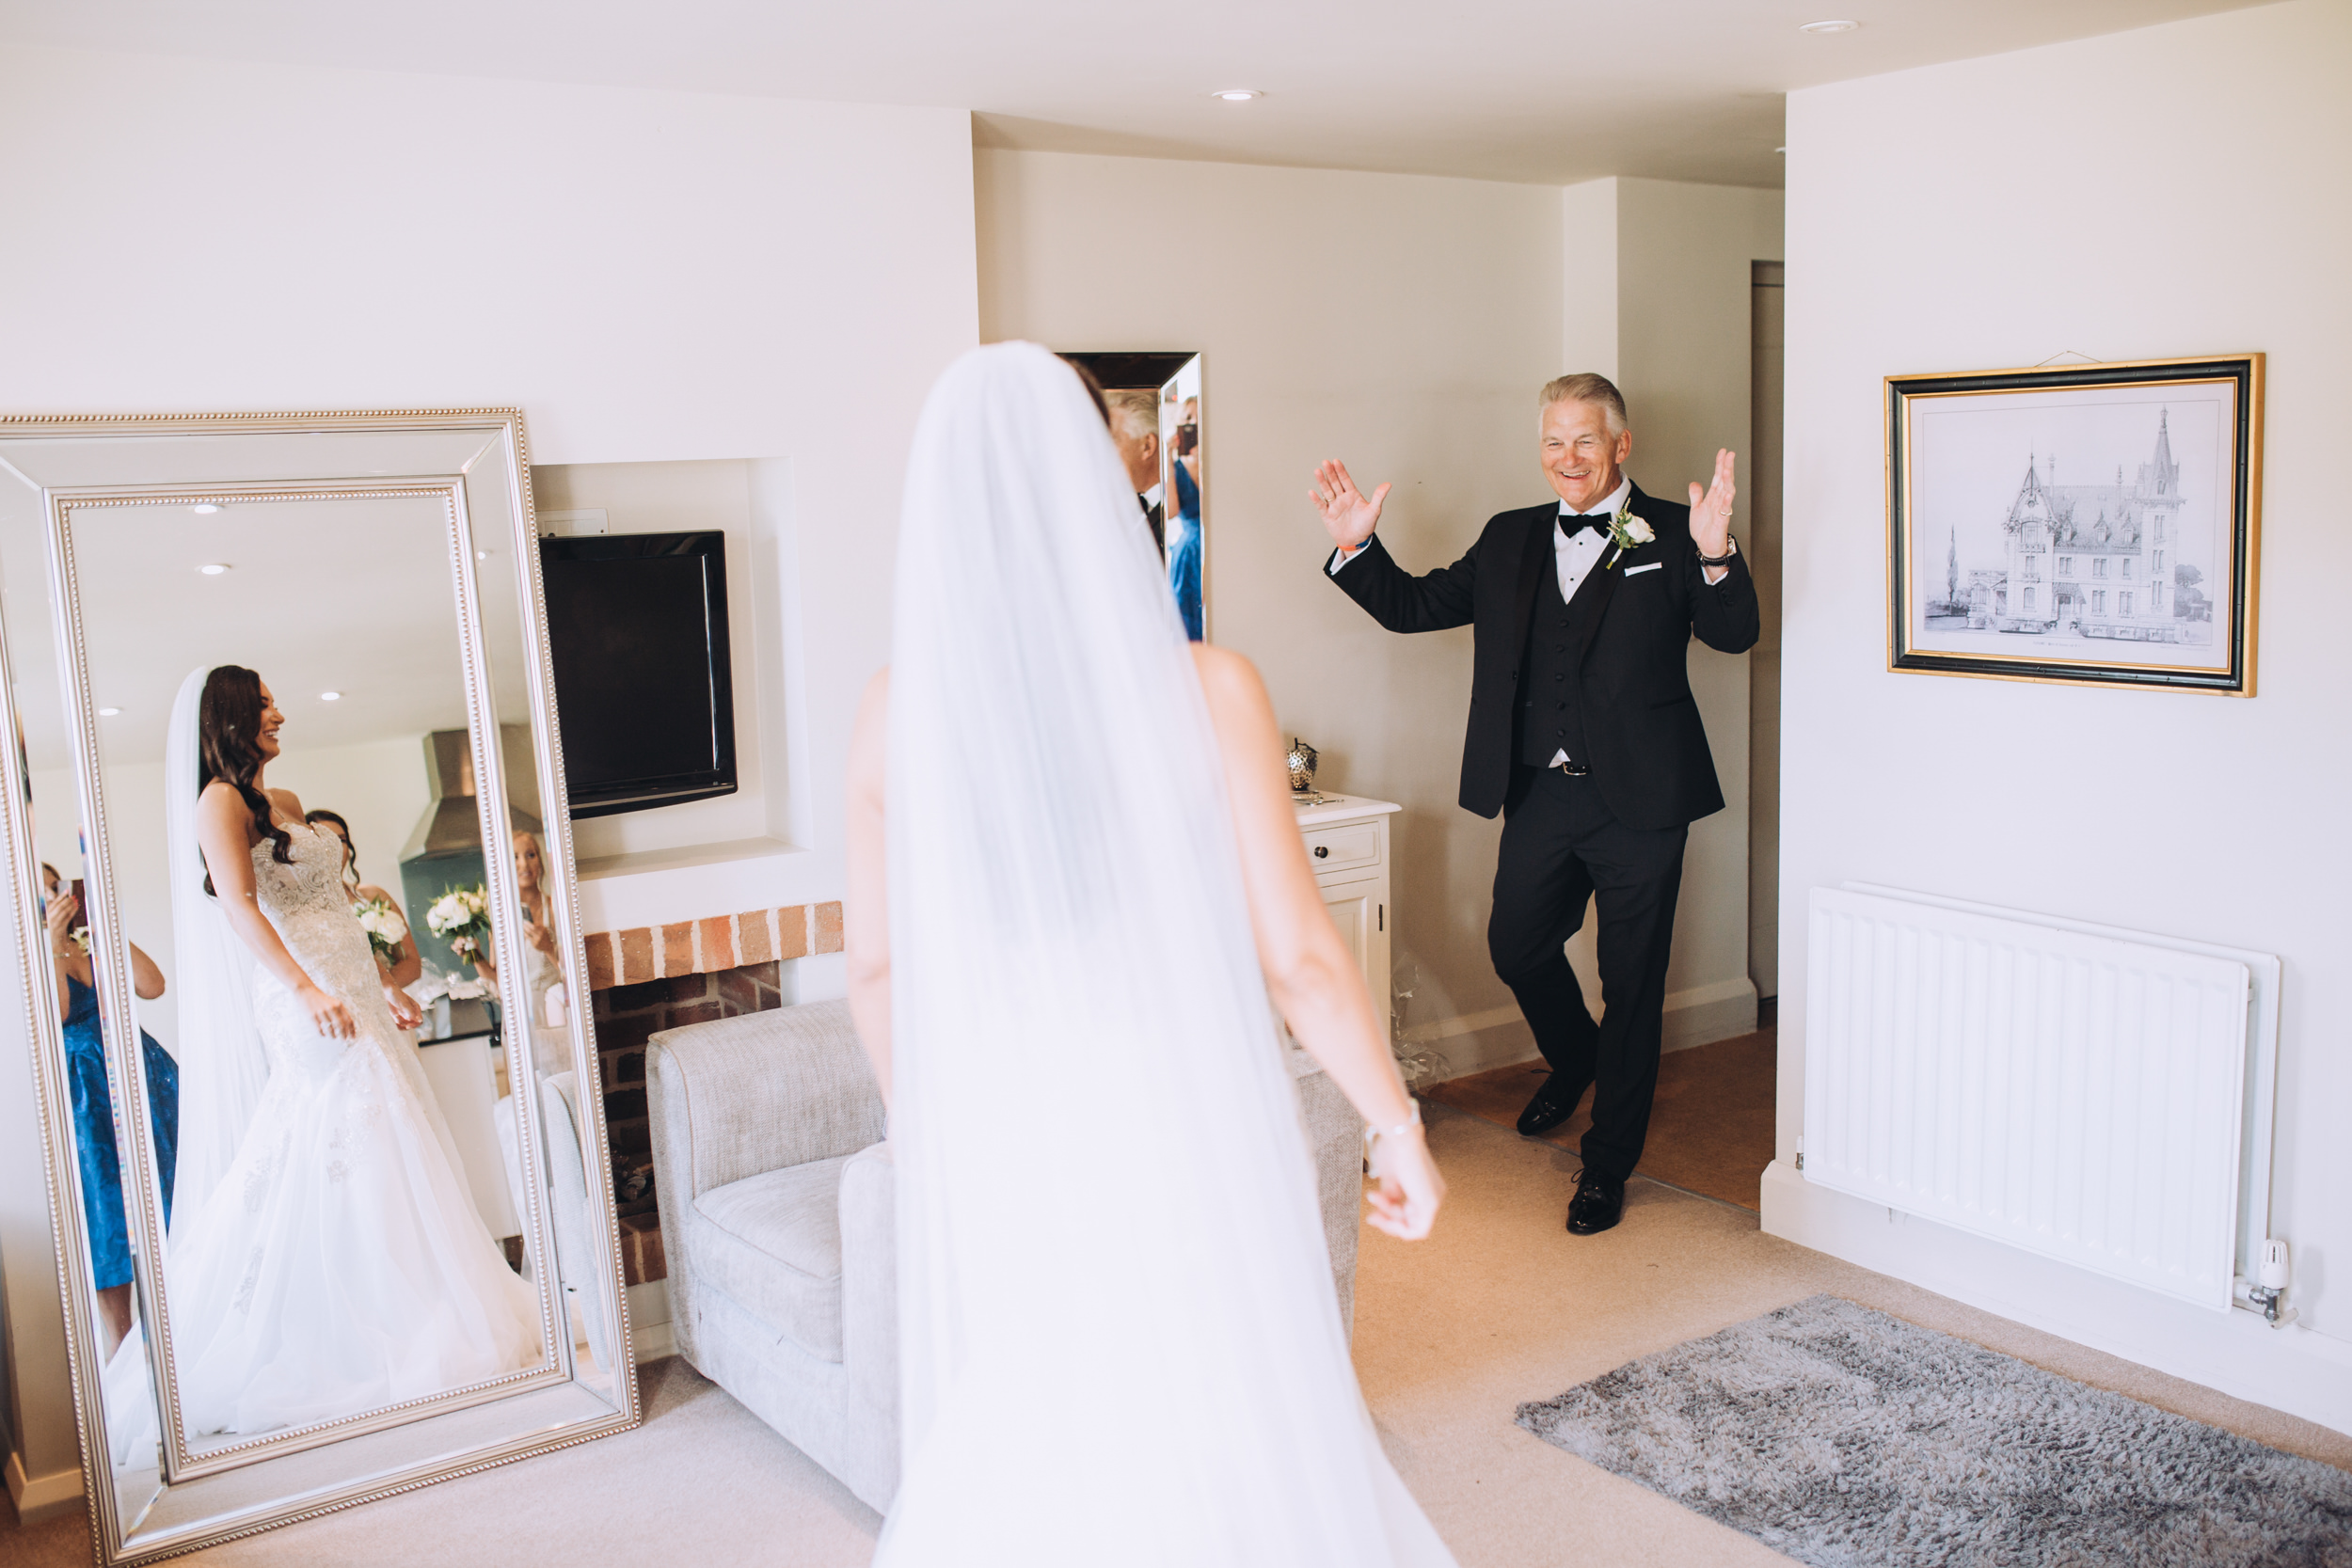 priory cottages wetherby wedding photographers18.jpg